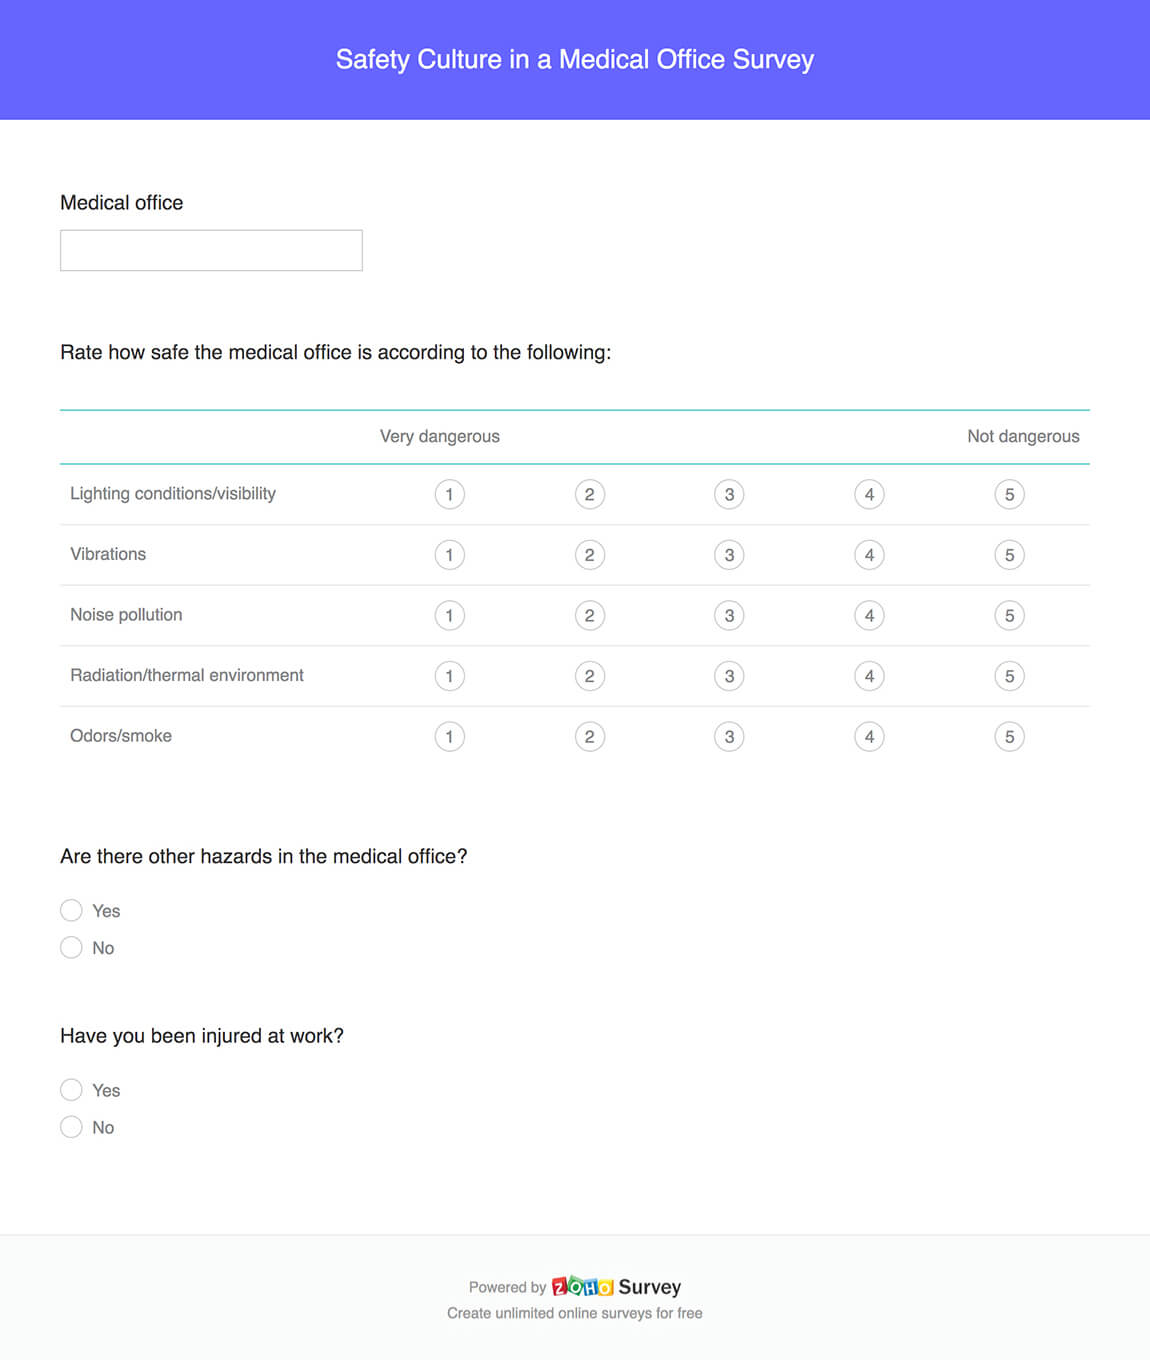 Safety culture in a medical office survey questionnaire template